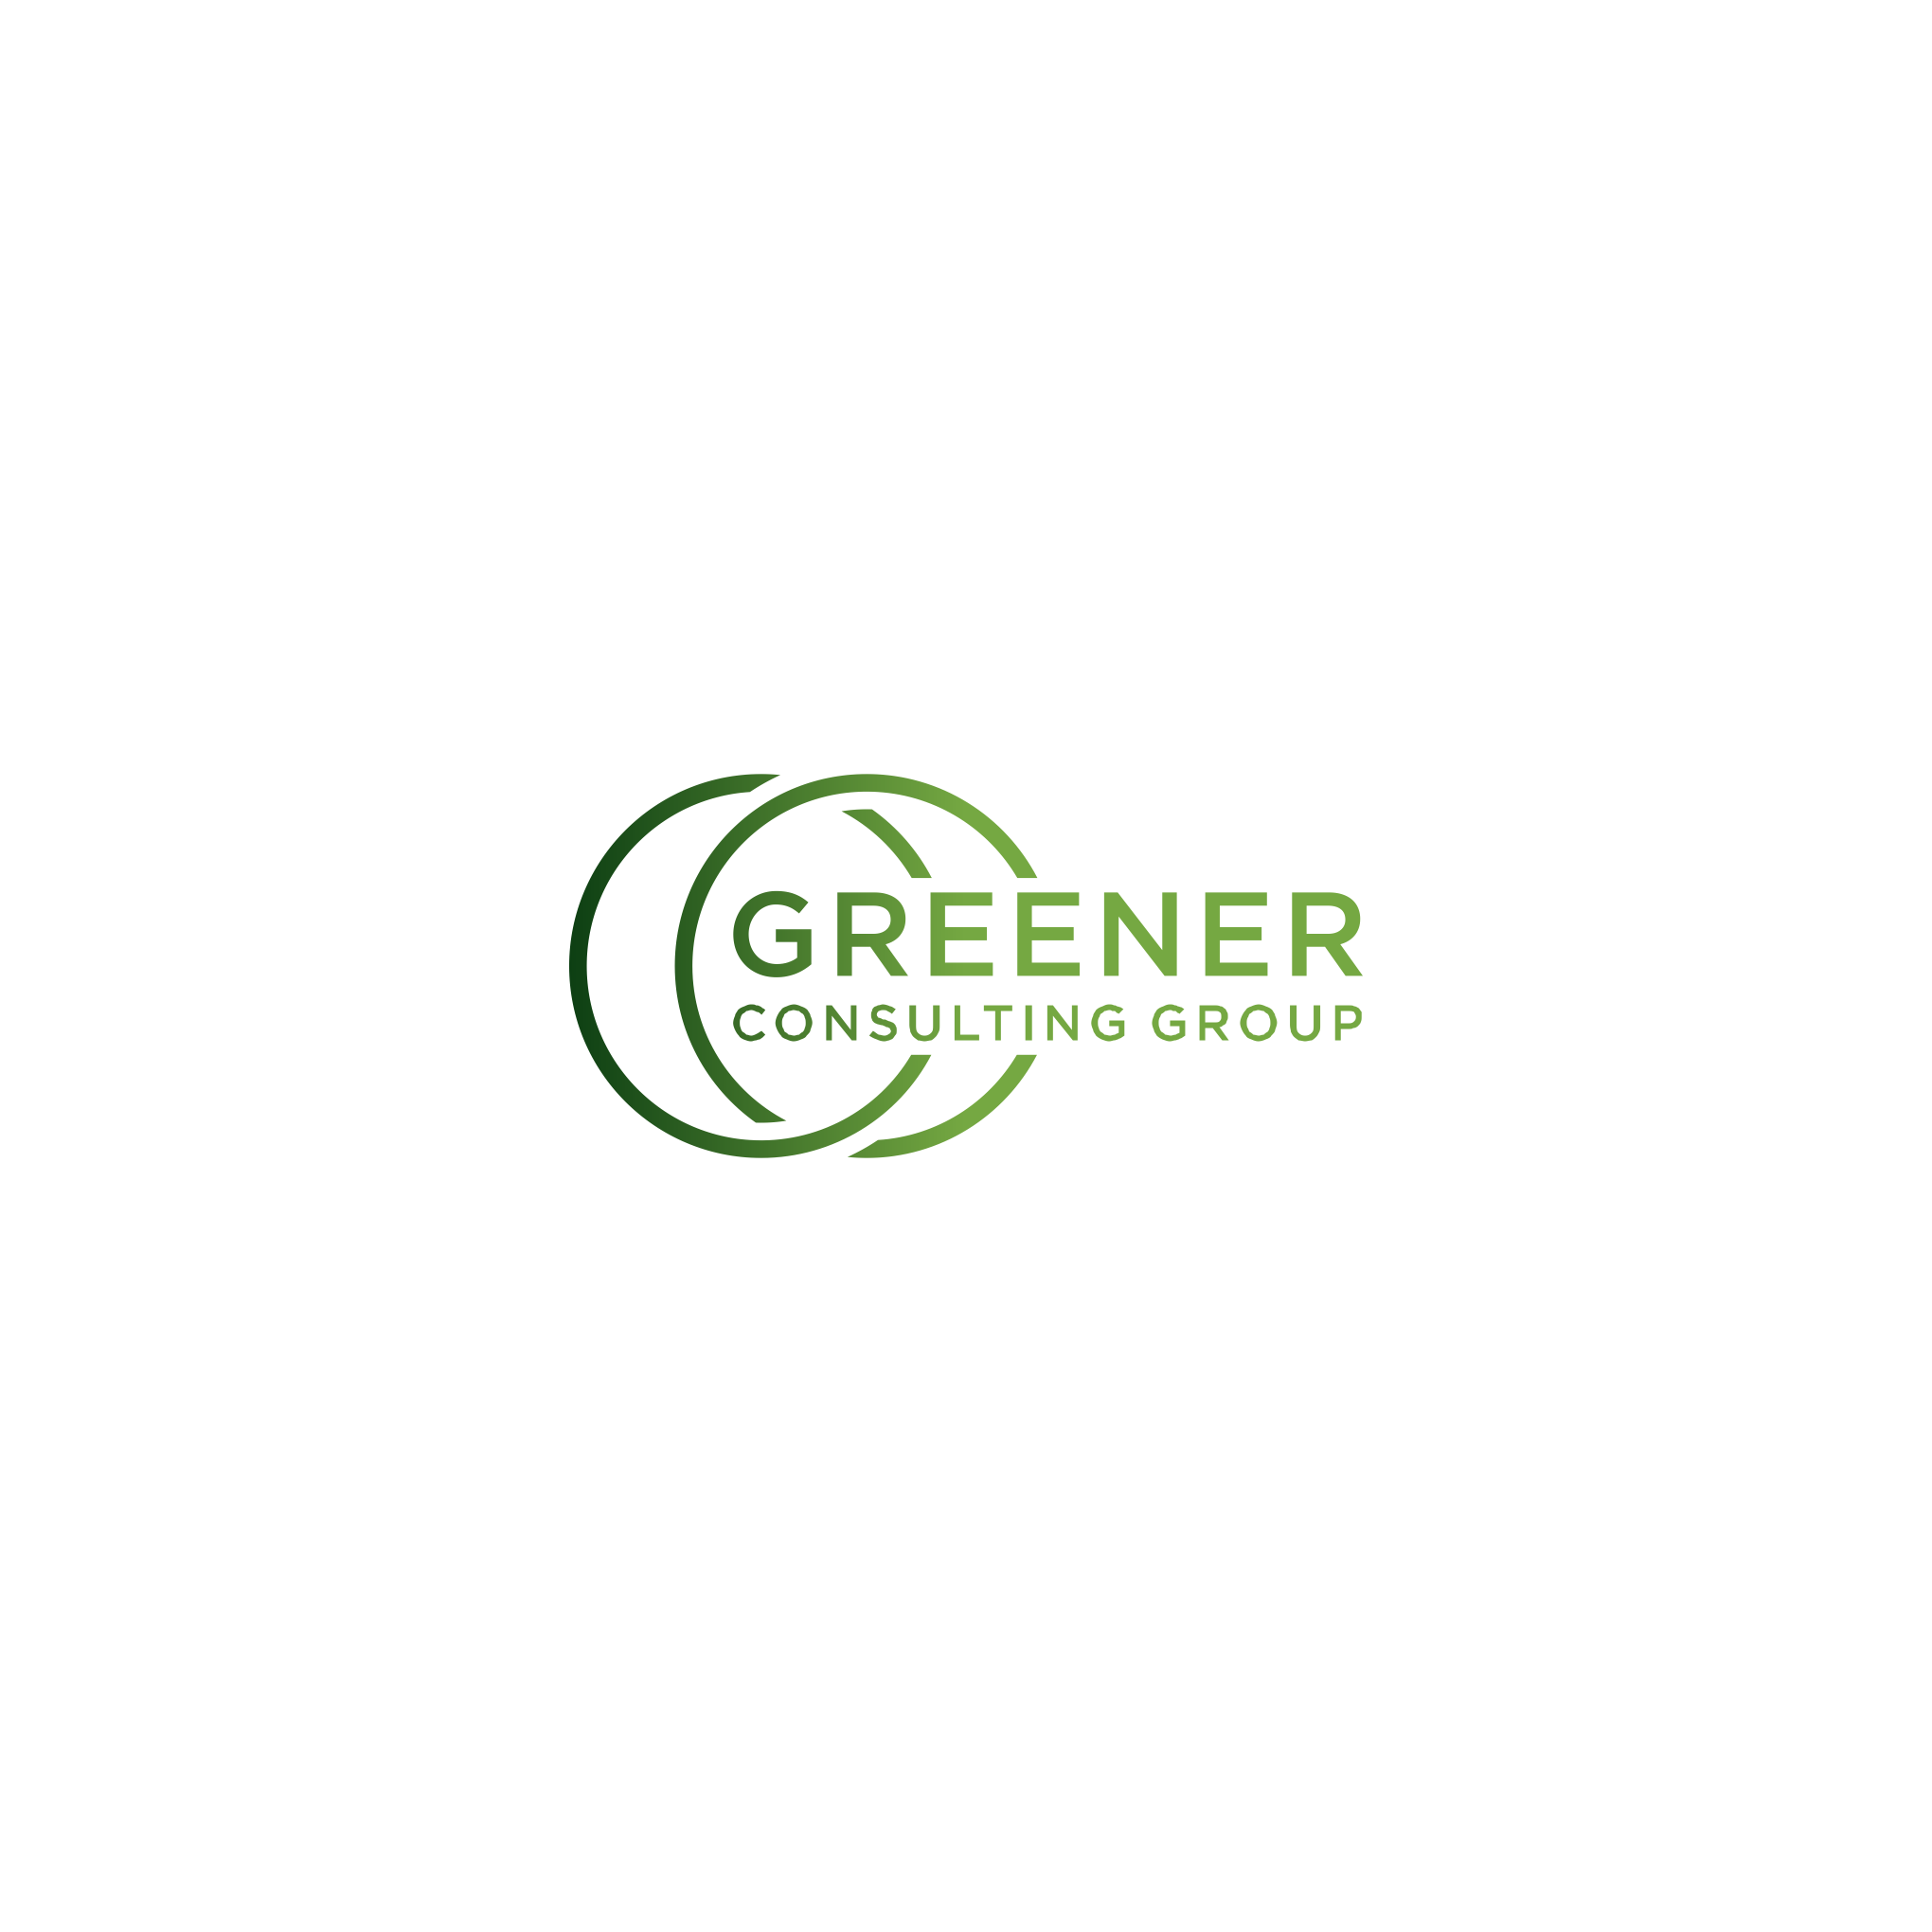 Greener Consulting Group